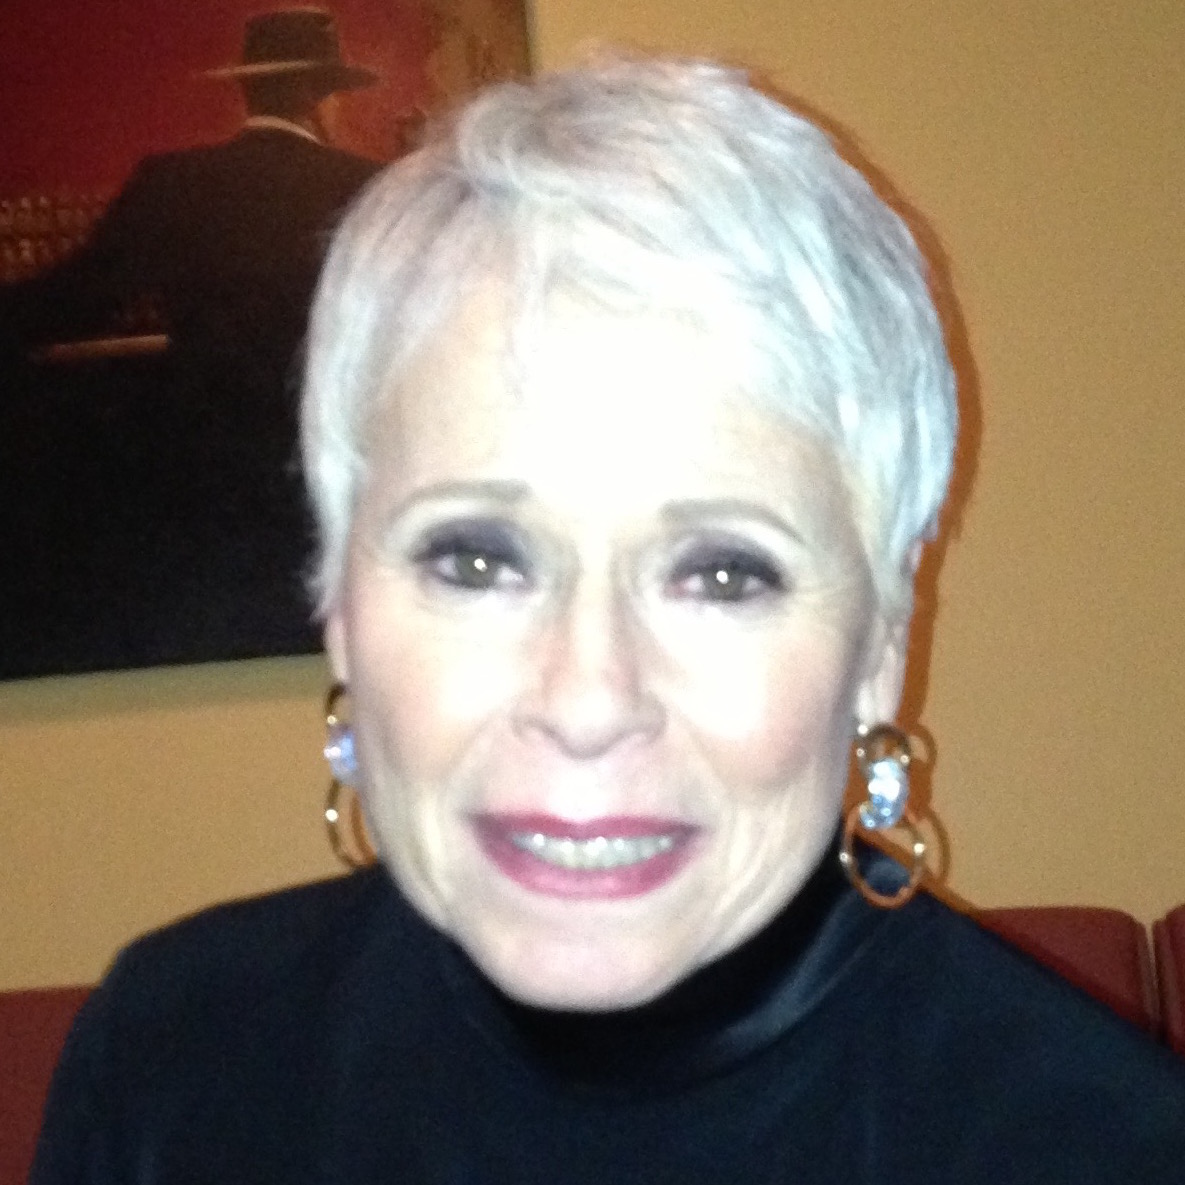 Roberta   Klein   Joined 2016 - Alto 2   Love acting, singing, dancing and theater.